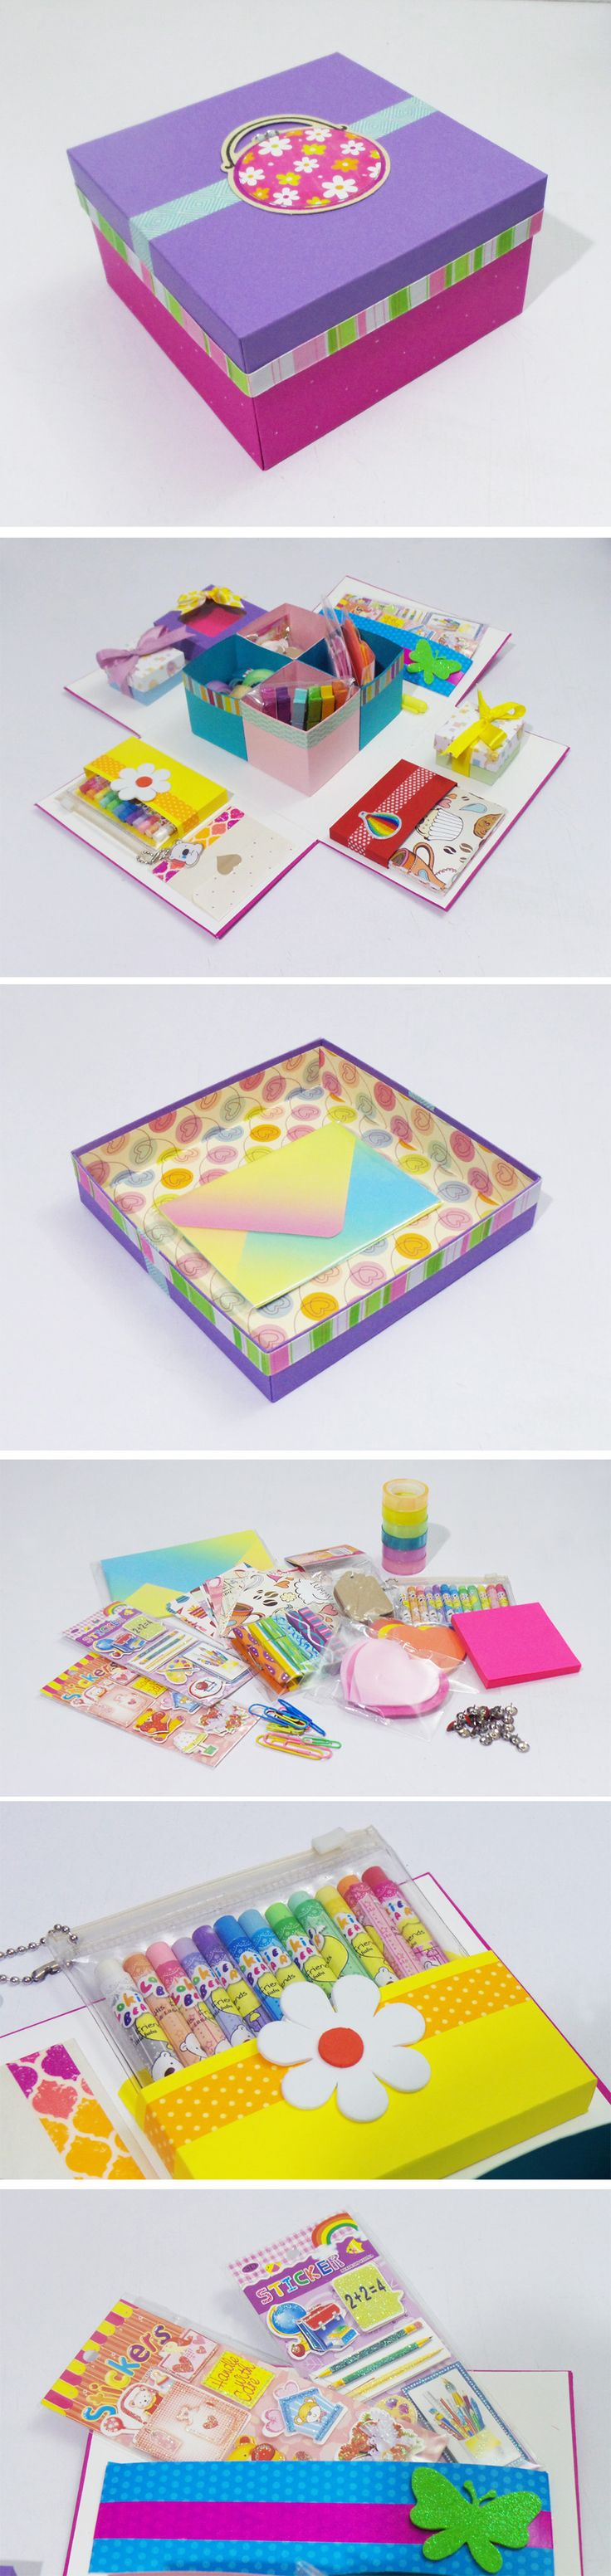 Mini Kit de Papelería súper divertido e ideal para un regalo